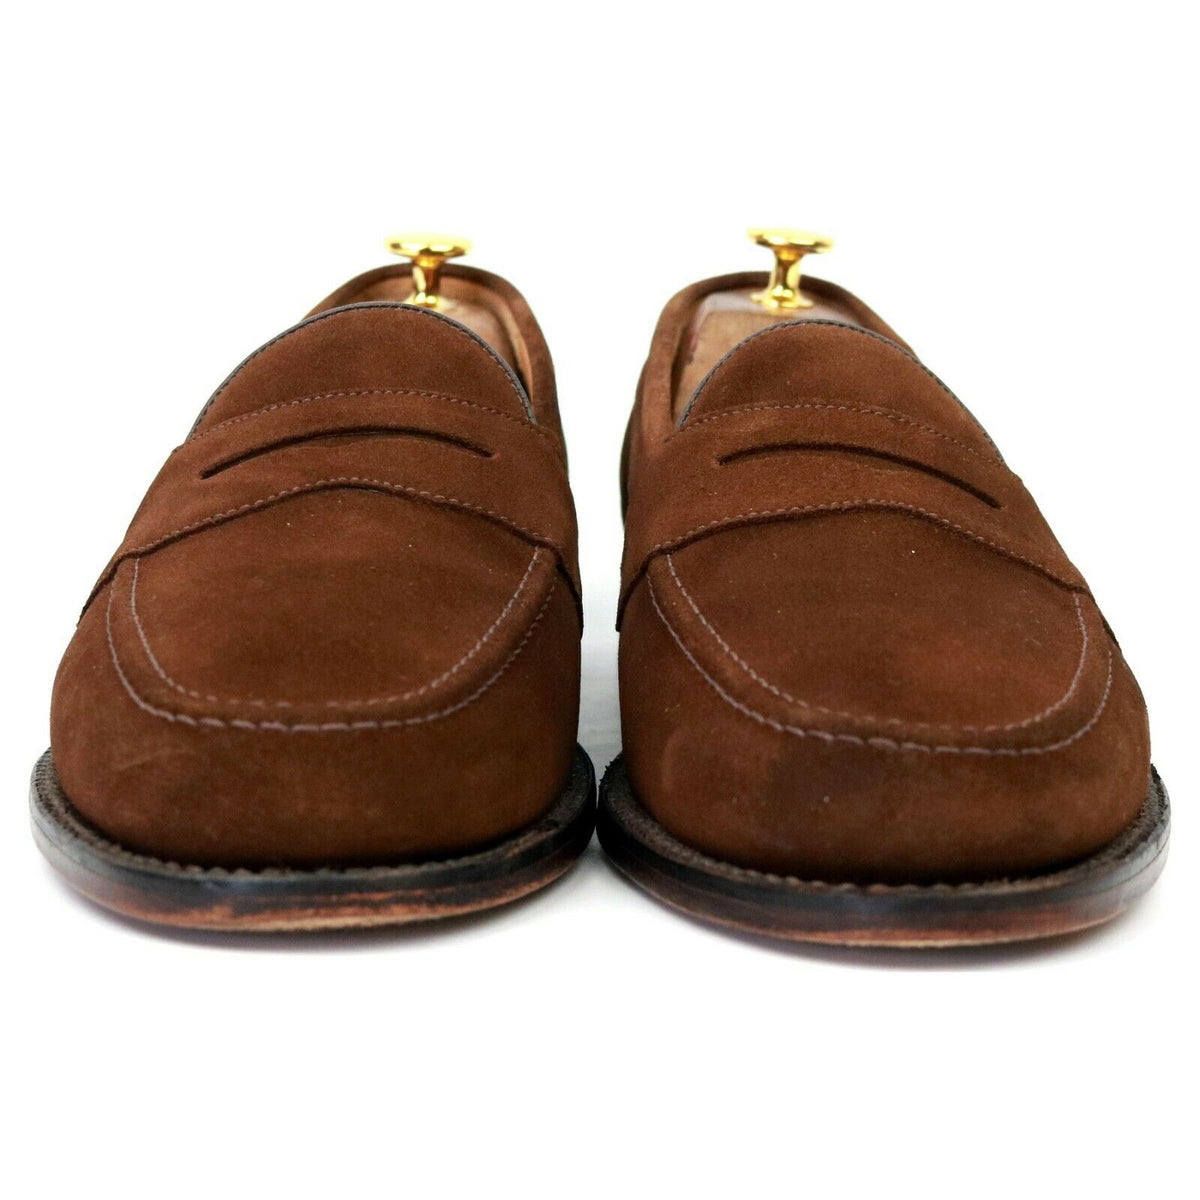 Loake 'Eton' Brown Suede Loafers UK 9 F